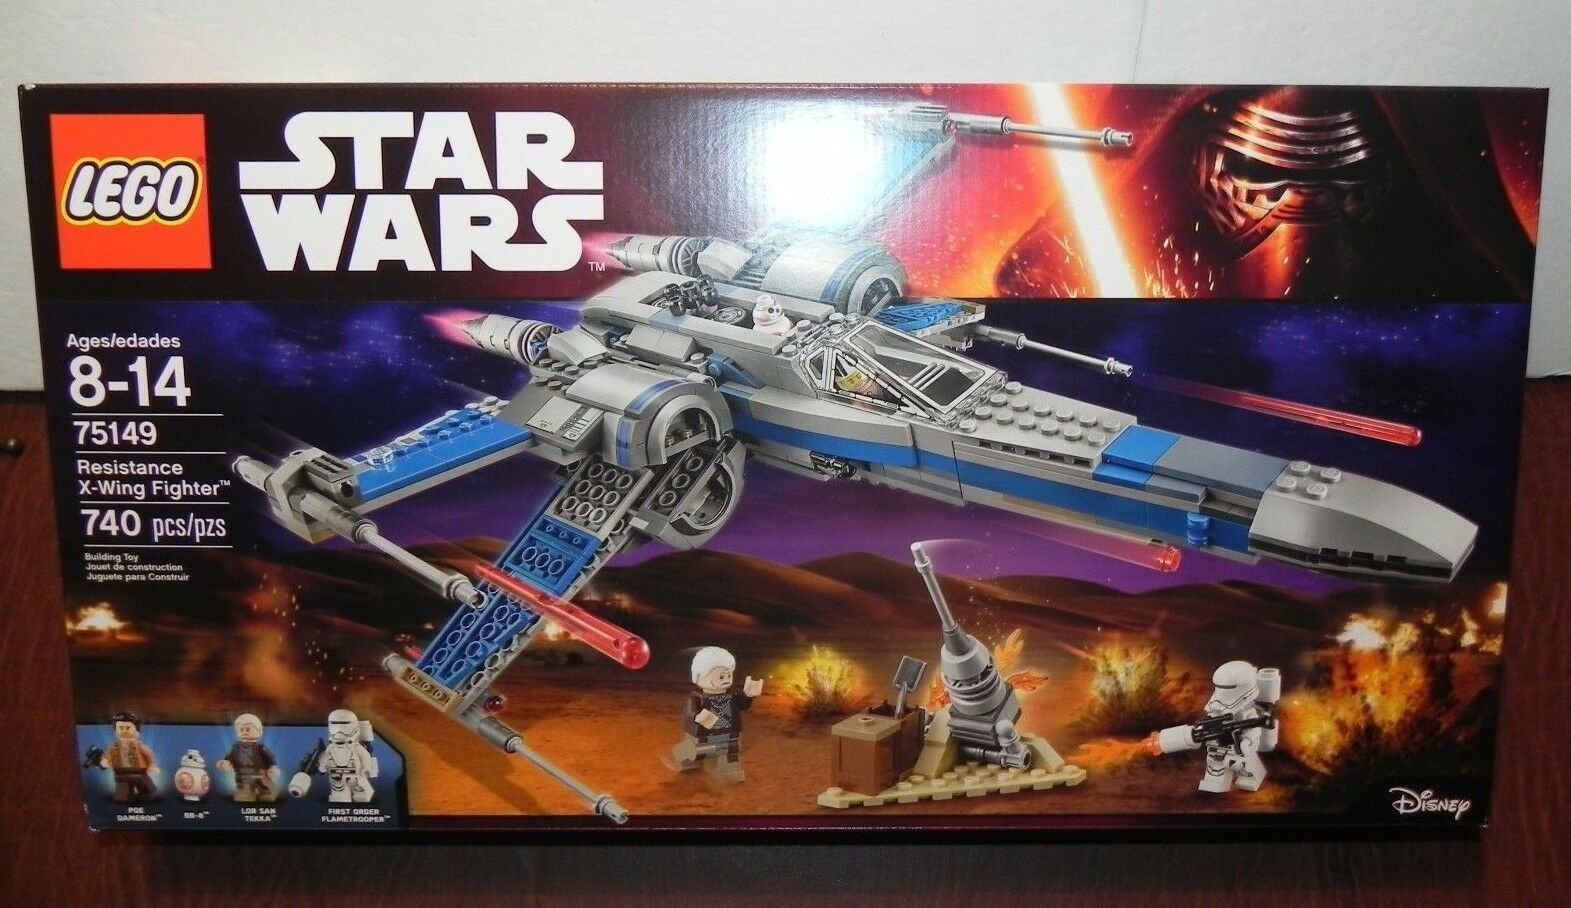 LEGO STAR WARS WARS WARS  75149 RESISTANCE X-WING FIGHTER - 740 pcs NEW  Free Shipping  47ff7f